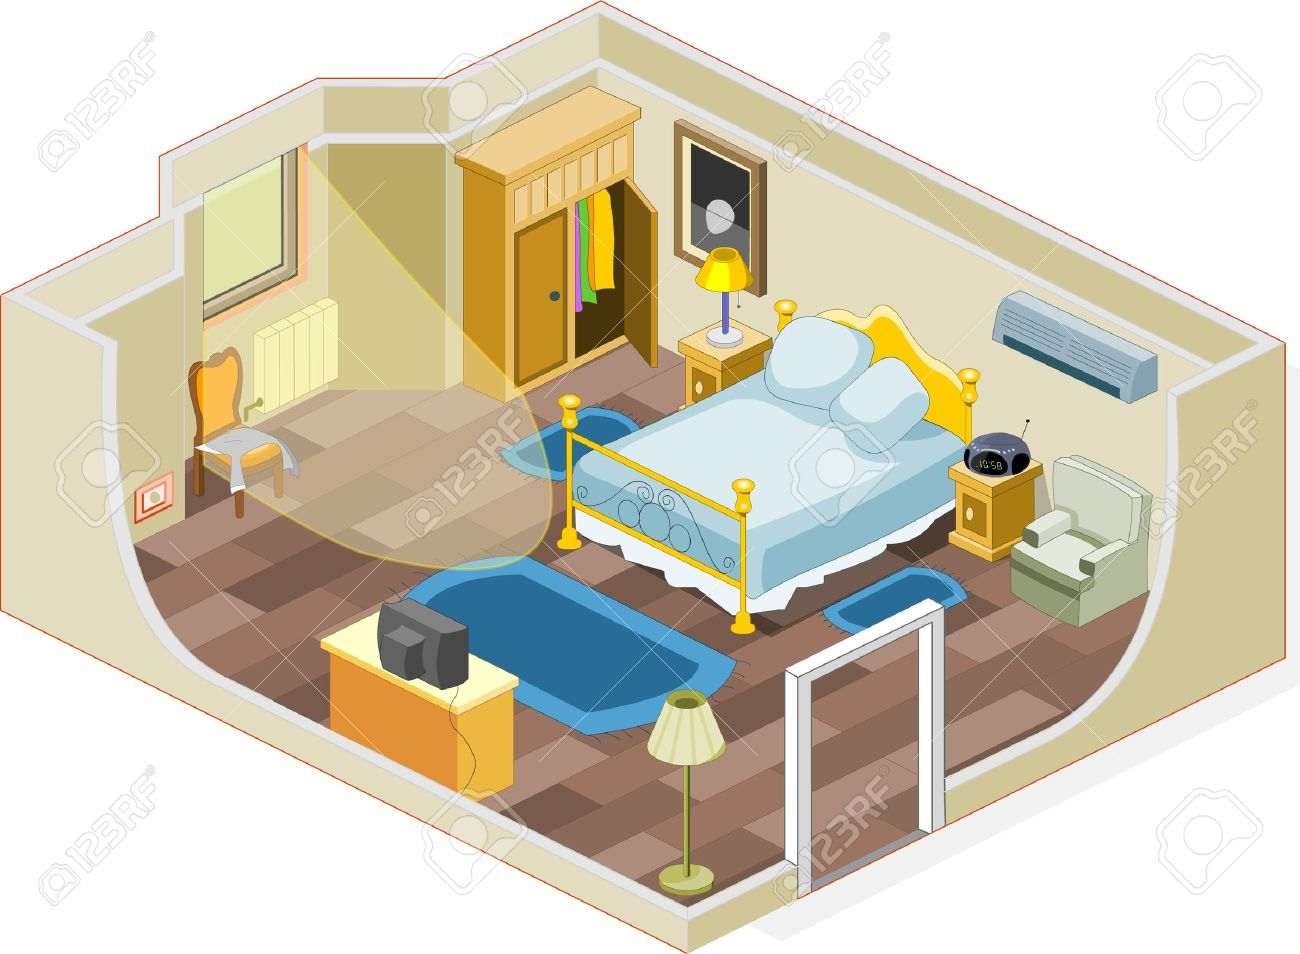 Bedroom Cartoon: Furniture And Objects Generally Used In A Bedroom  Illustration